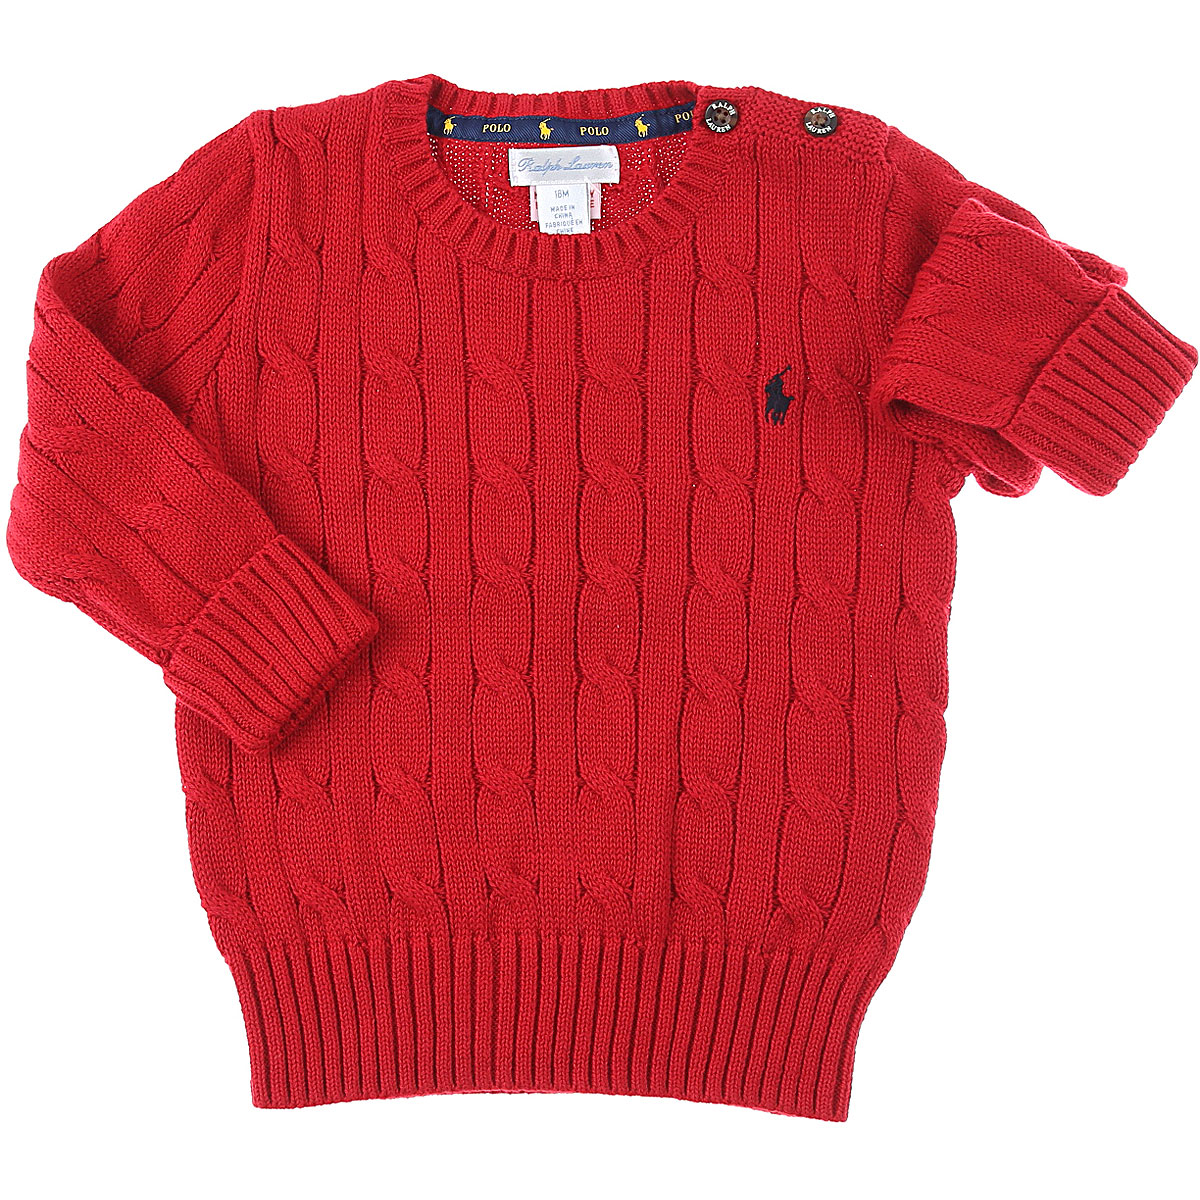 Ralph Lauren Baby Sweaters for Boys On Sale, Red, Cotton, 2019, 12 M 18M 2Y 9M